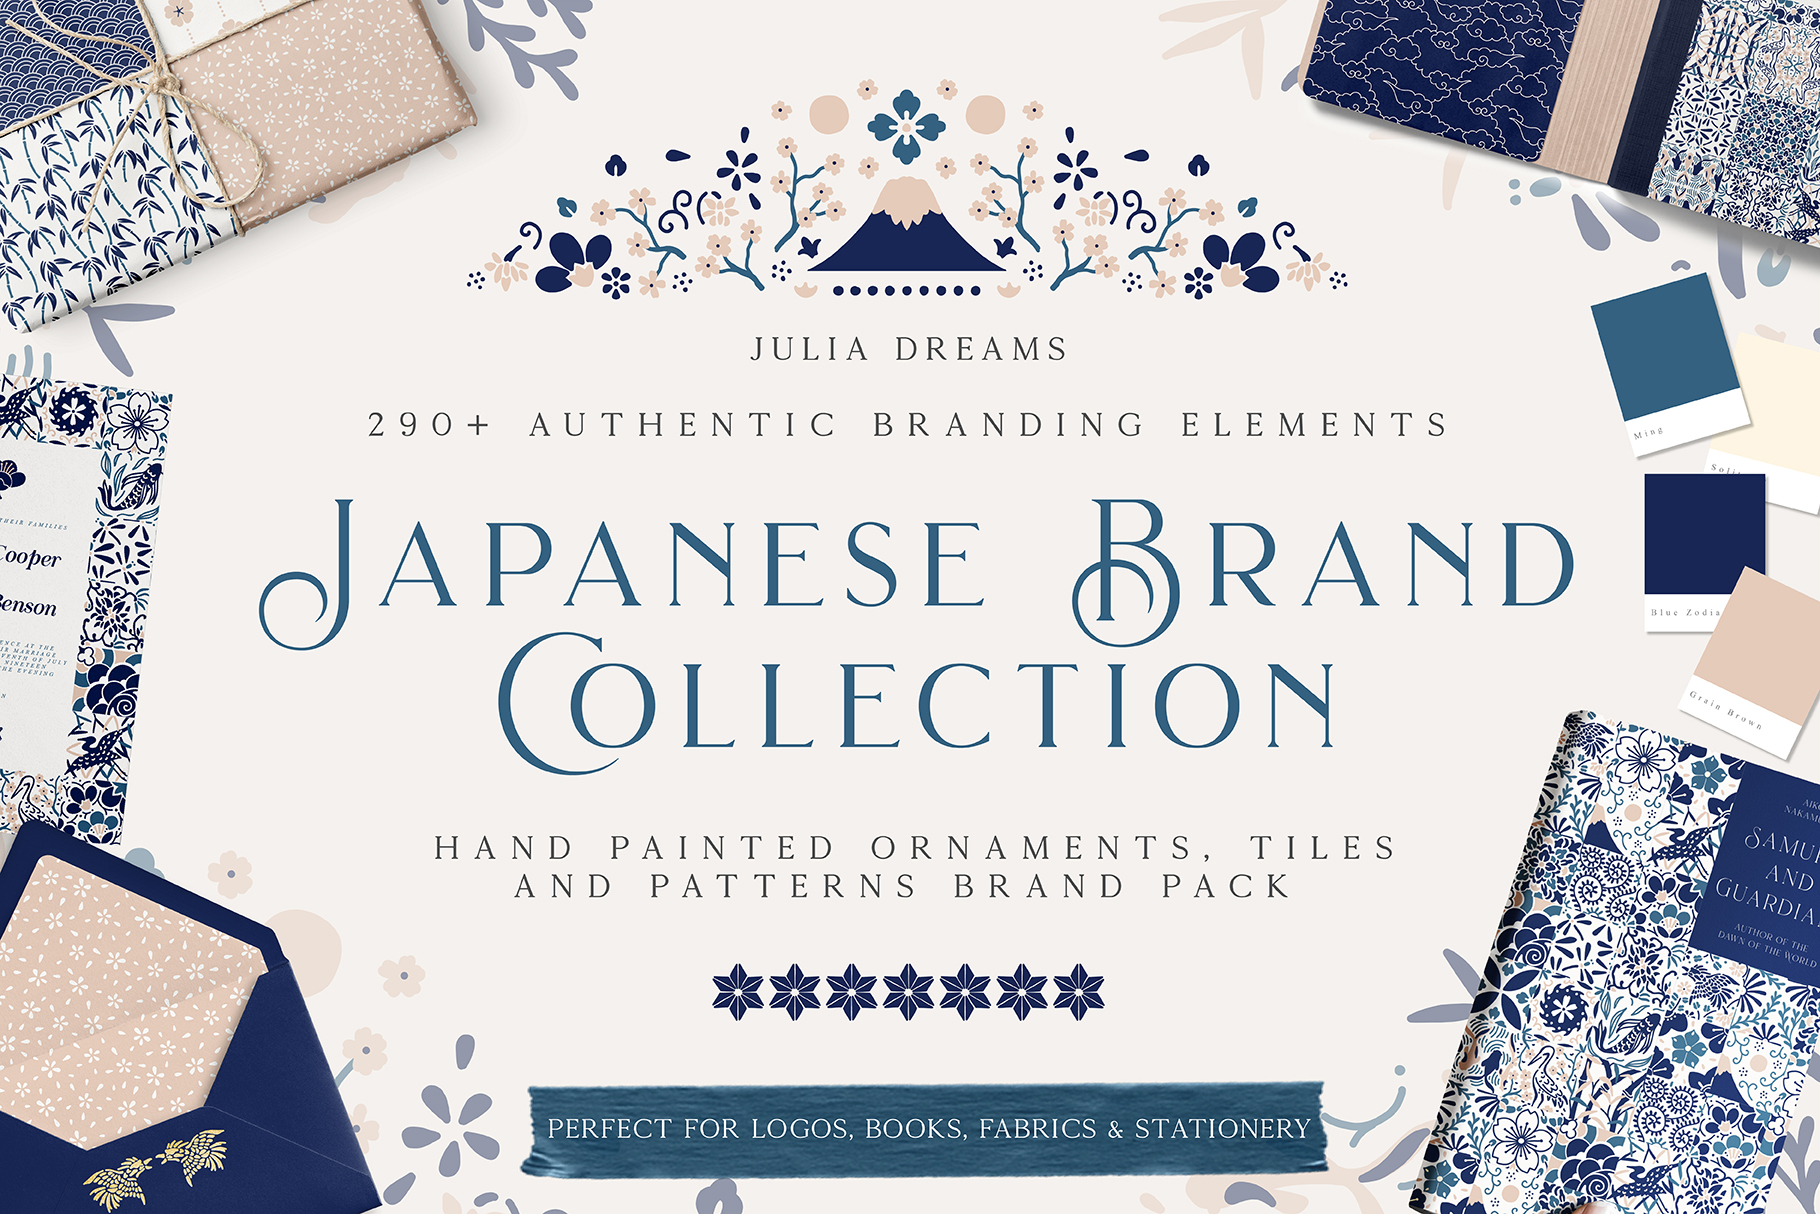 The International Brand Collection